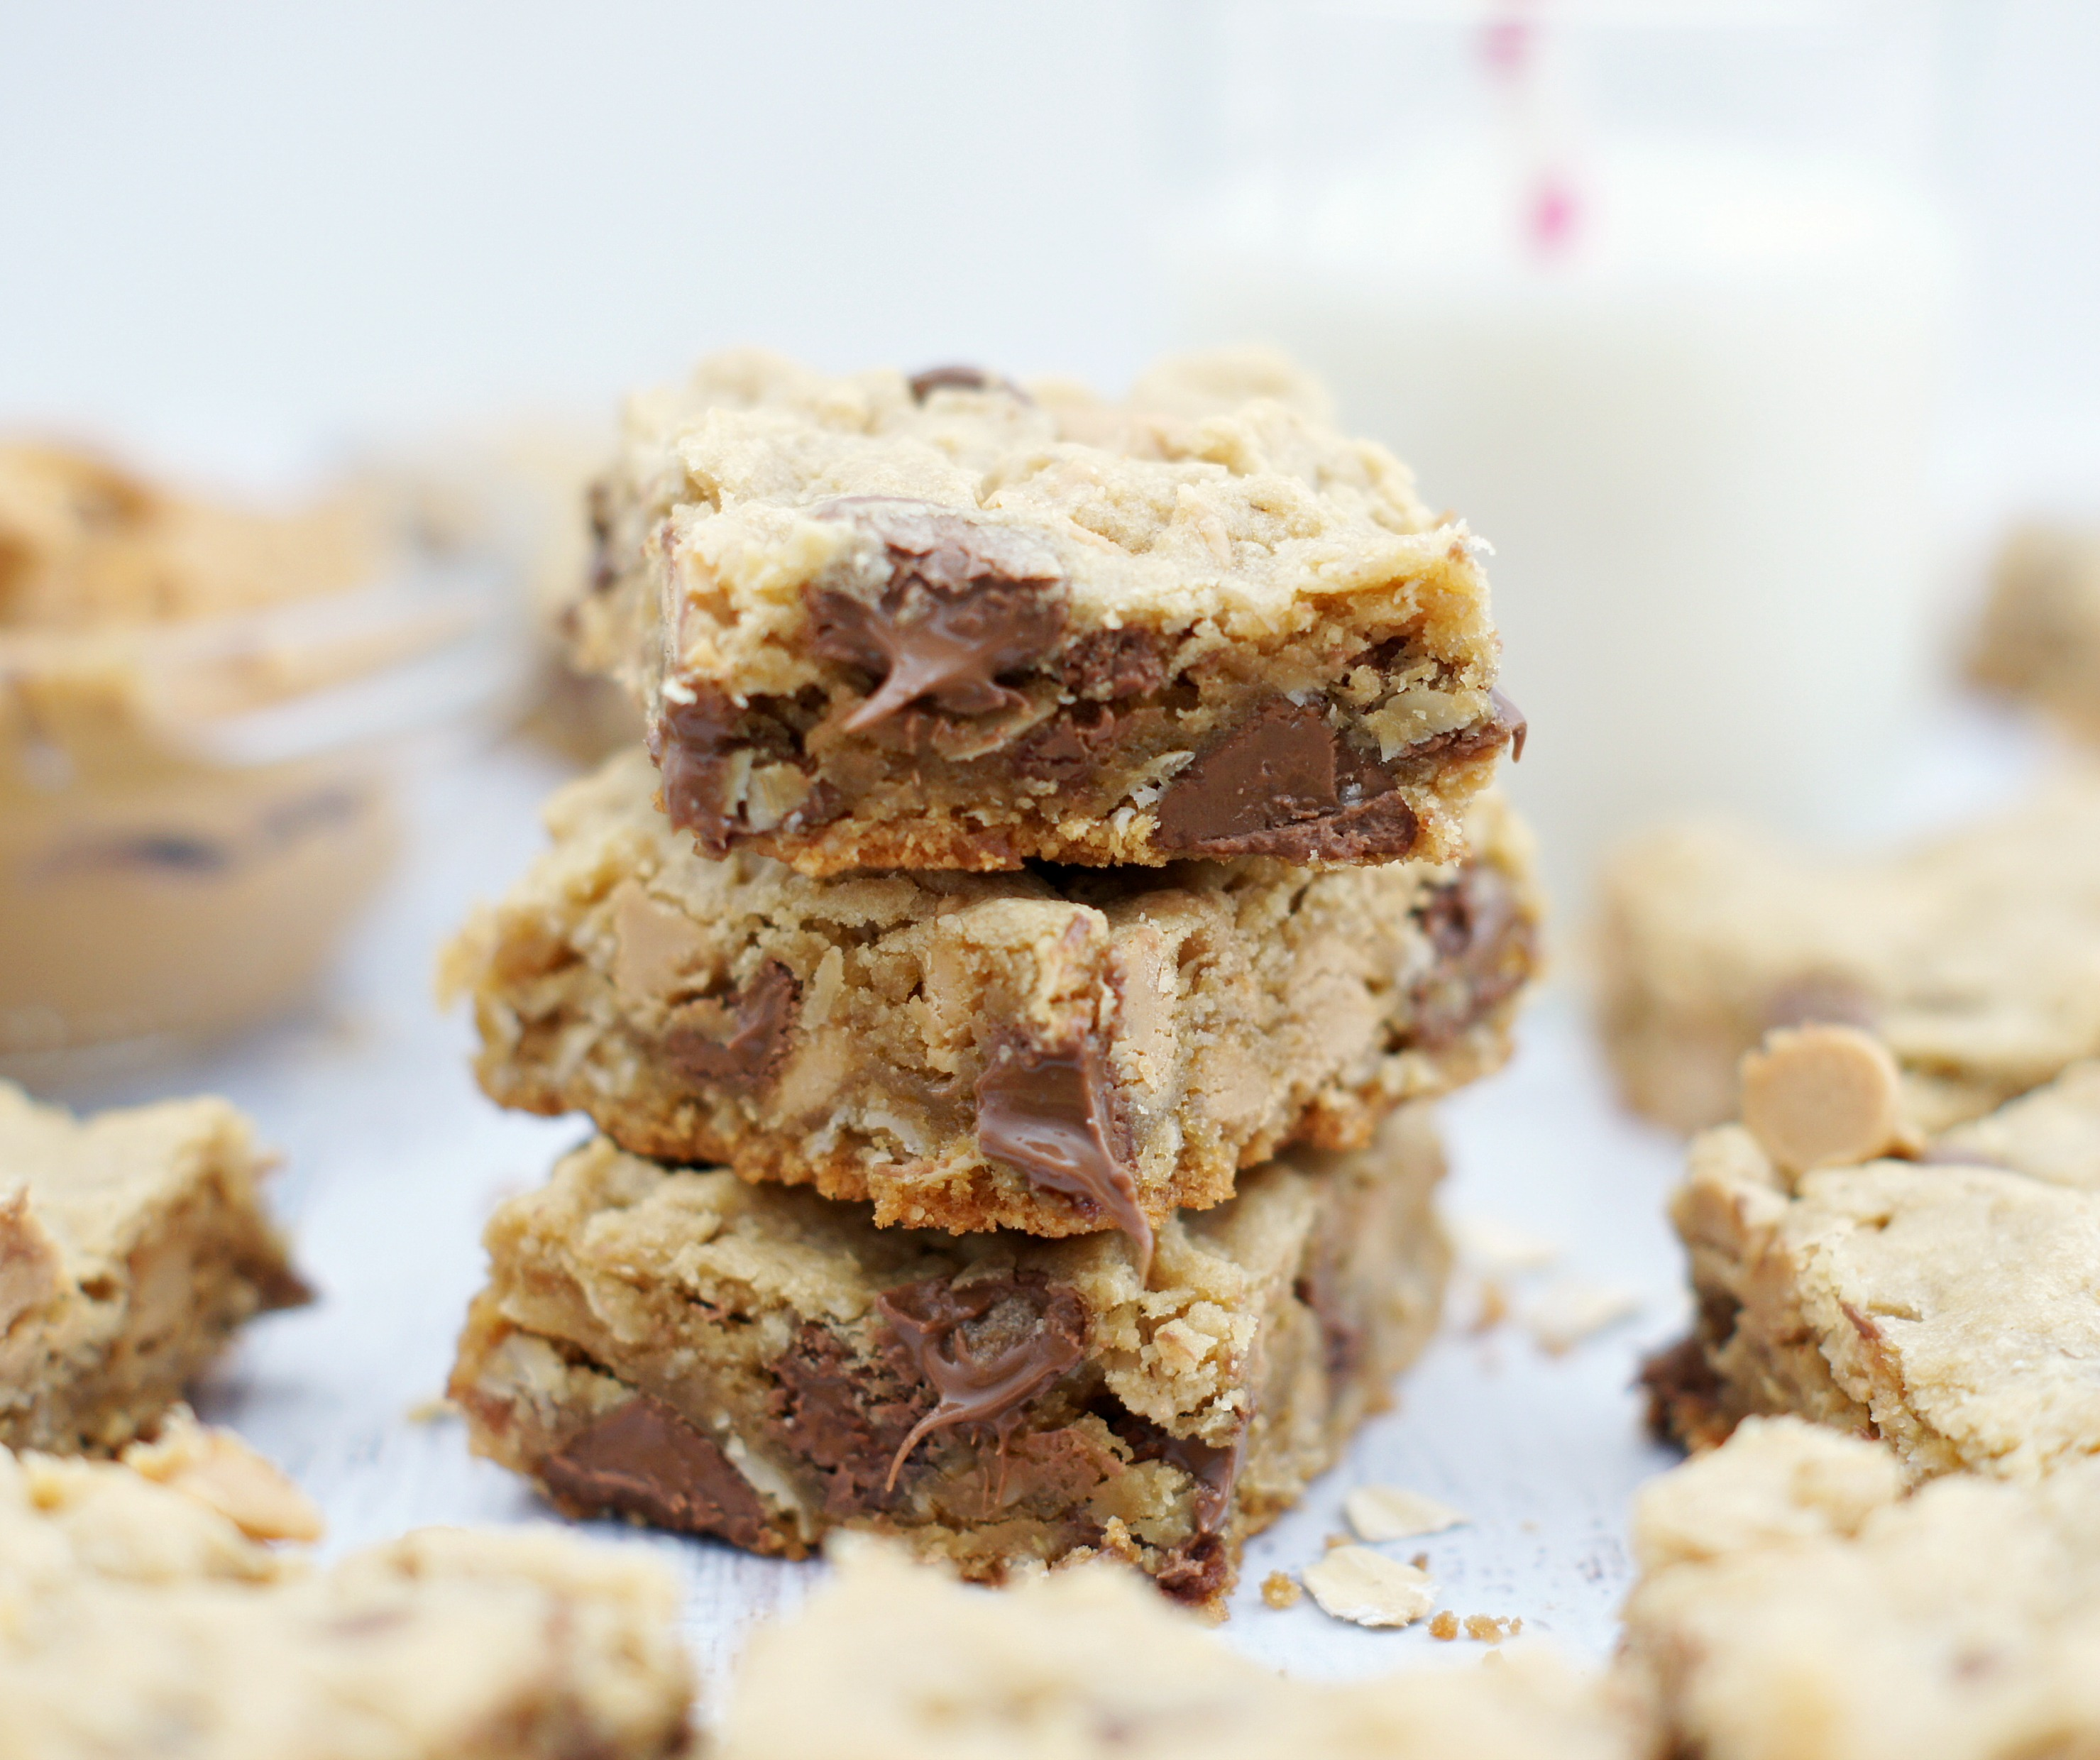 Oatmeal Chocolate Chip Peanut Butter Bars - 5BoysBaker